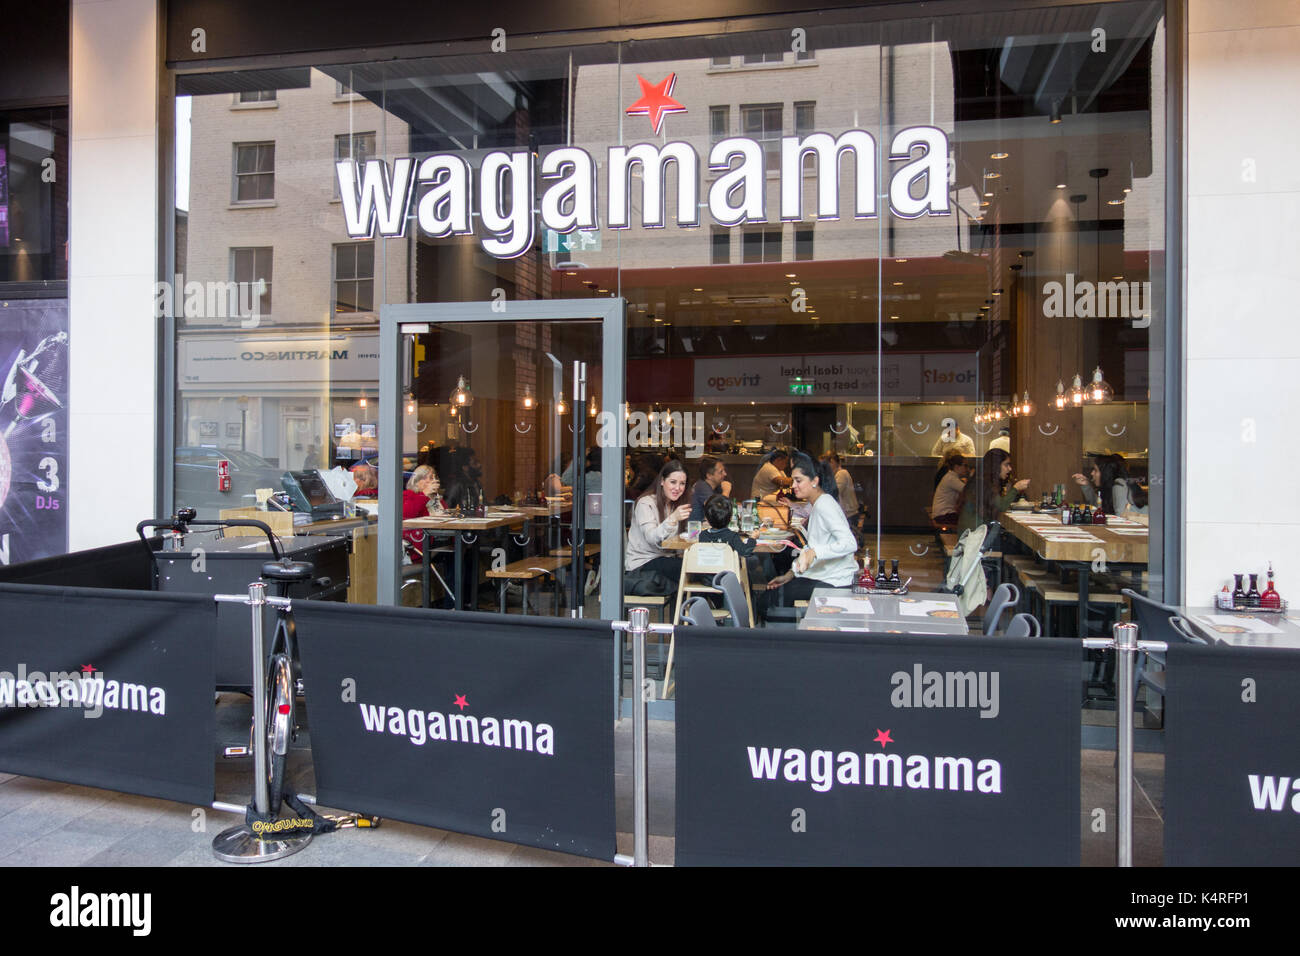 Wagamama - an Asian-inspired Japanese chain restaurant in Ealing, west London, U.K. Stock Photo